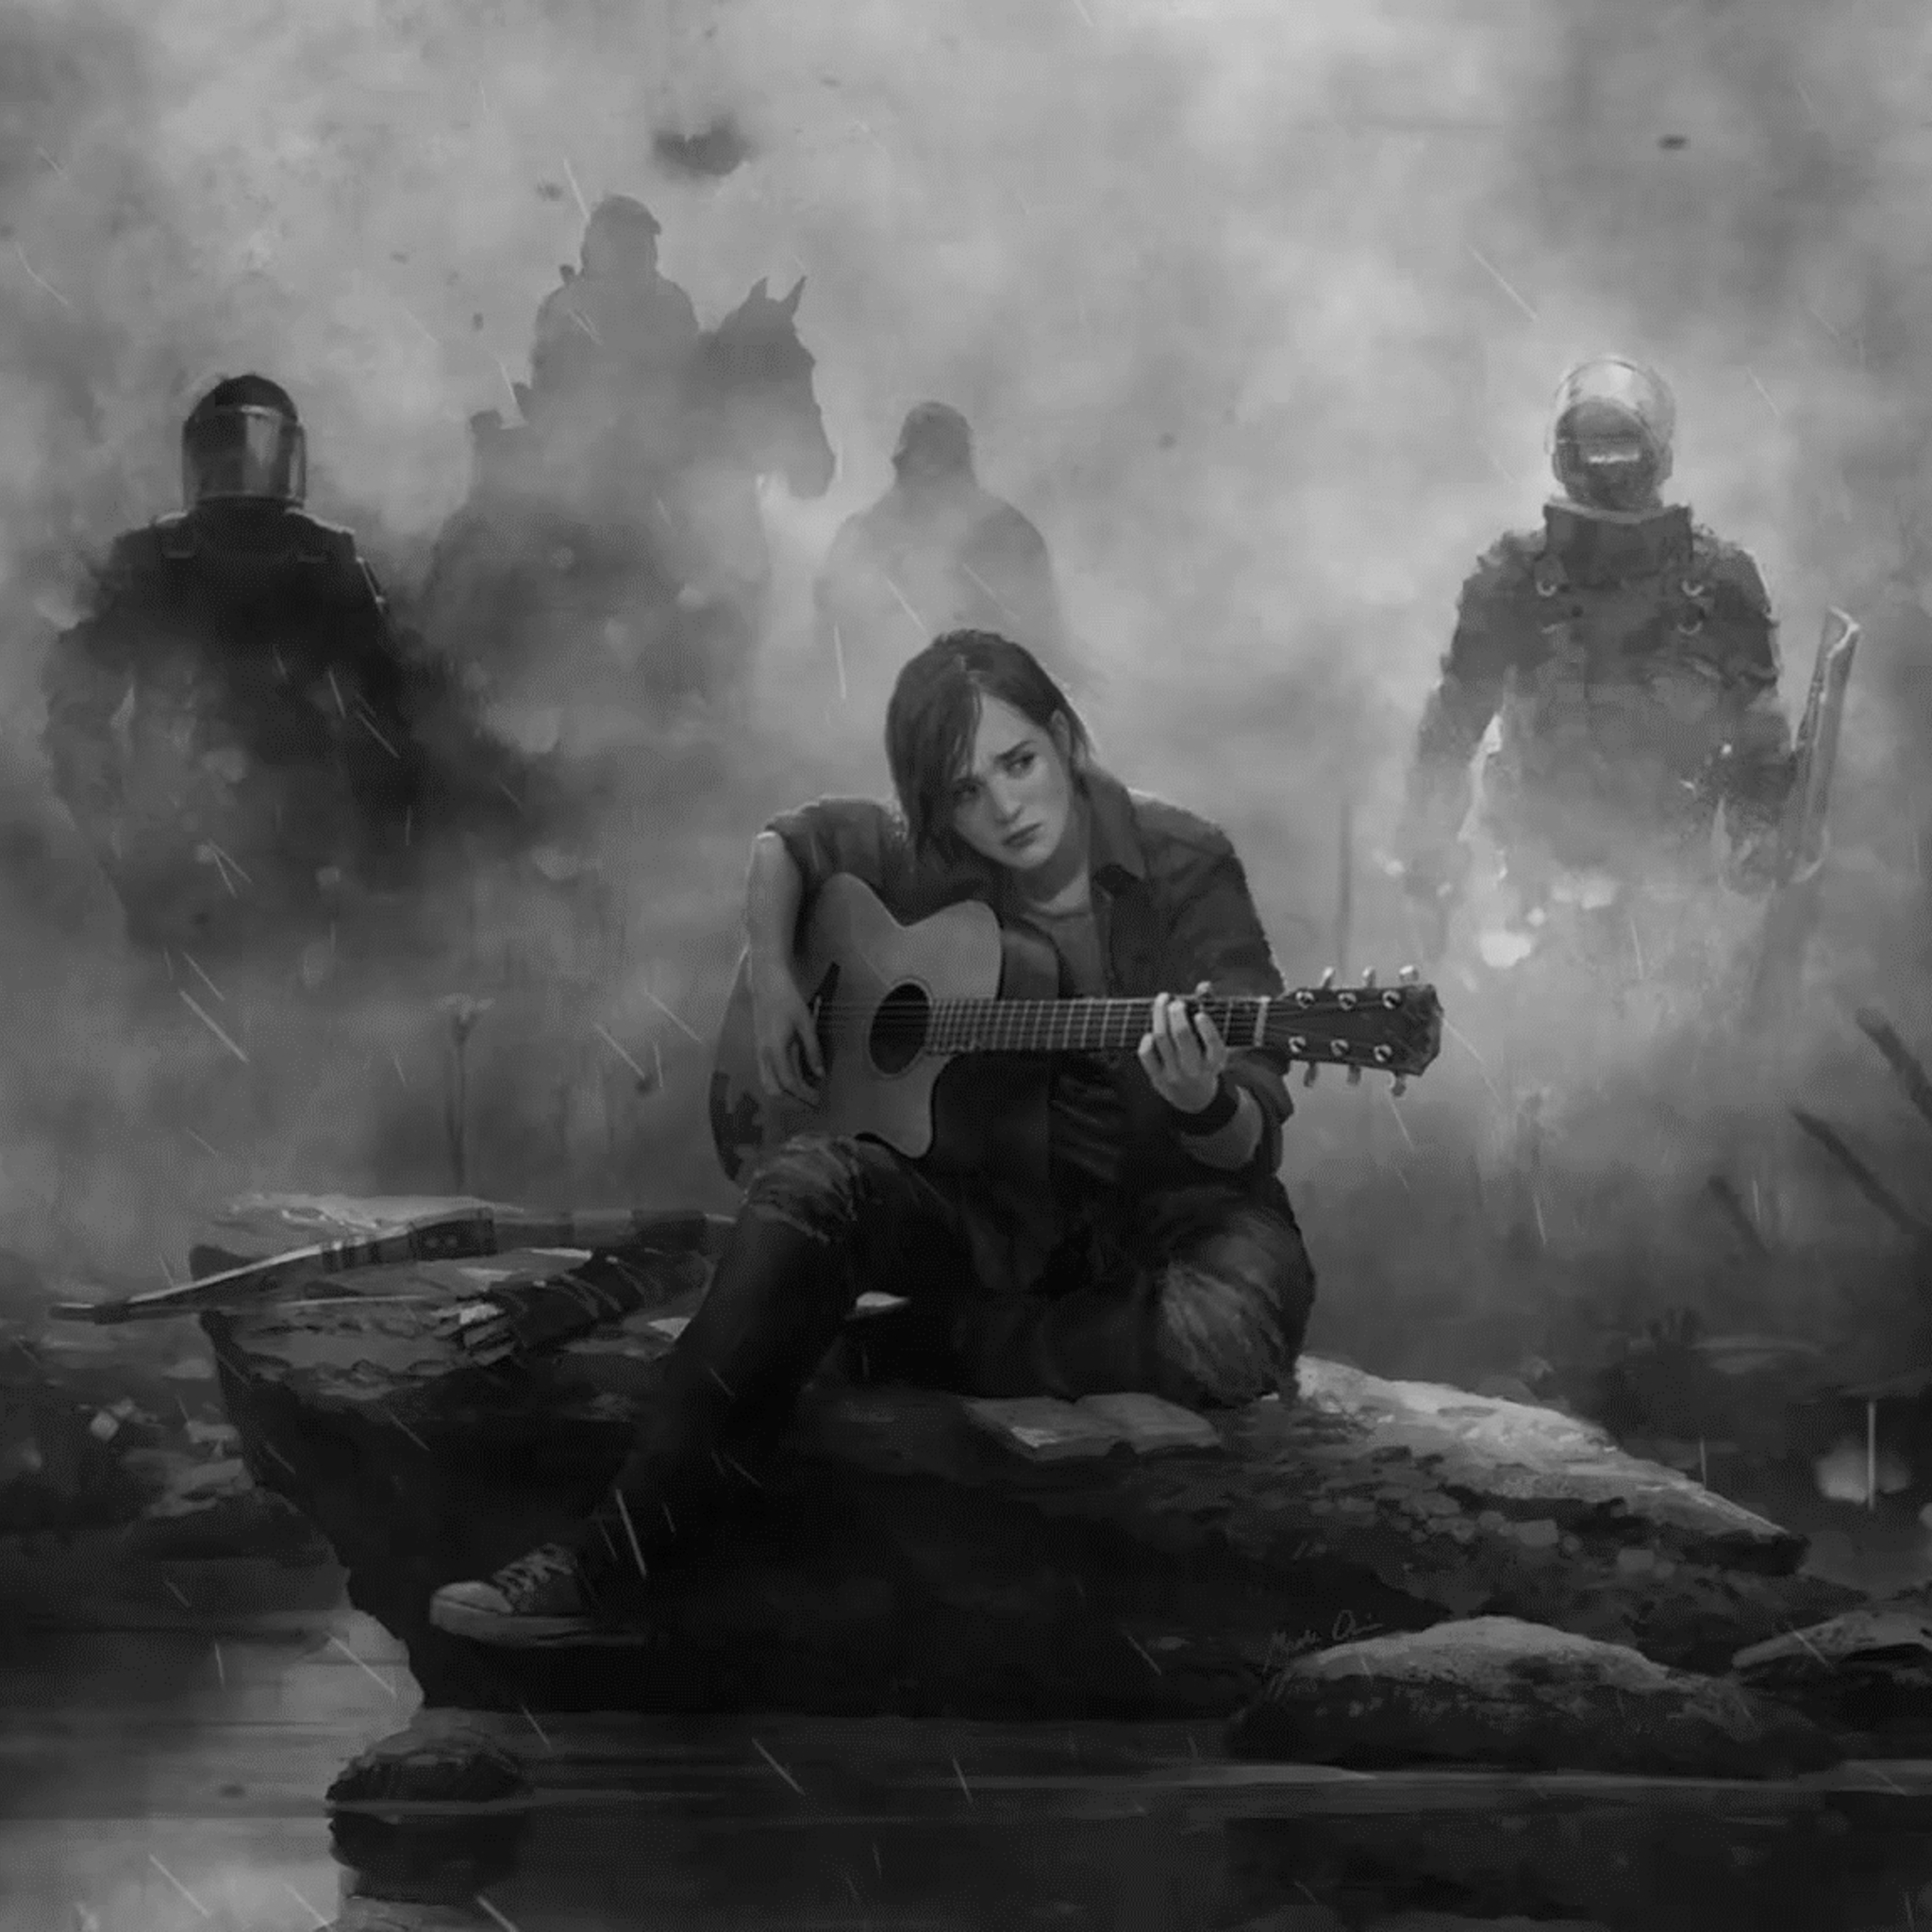 2048x2048 Ellie The Last Of Us Part 2 Guitar Monochrome Ipad Air